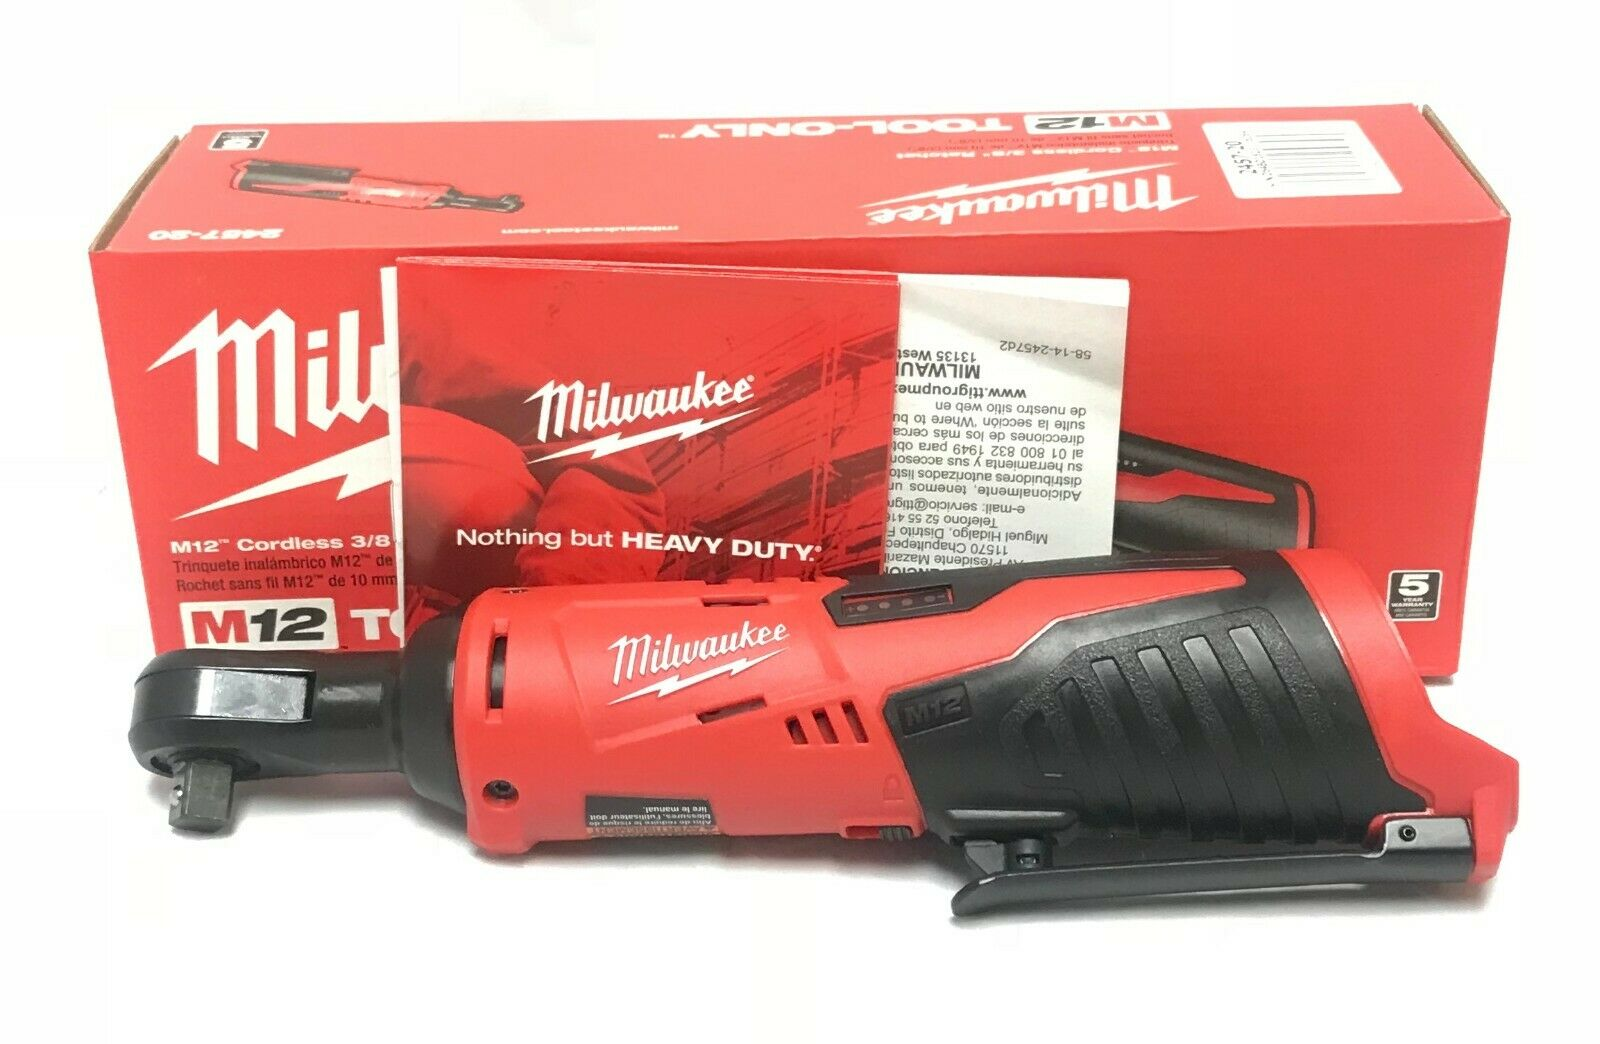 Milwaukee 2457-20 M12 12-Volt 3/8-Inch Ratchet – Bare Tool